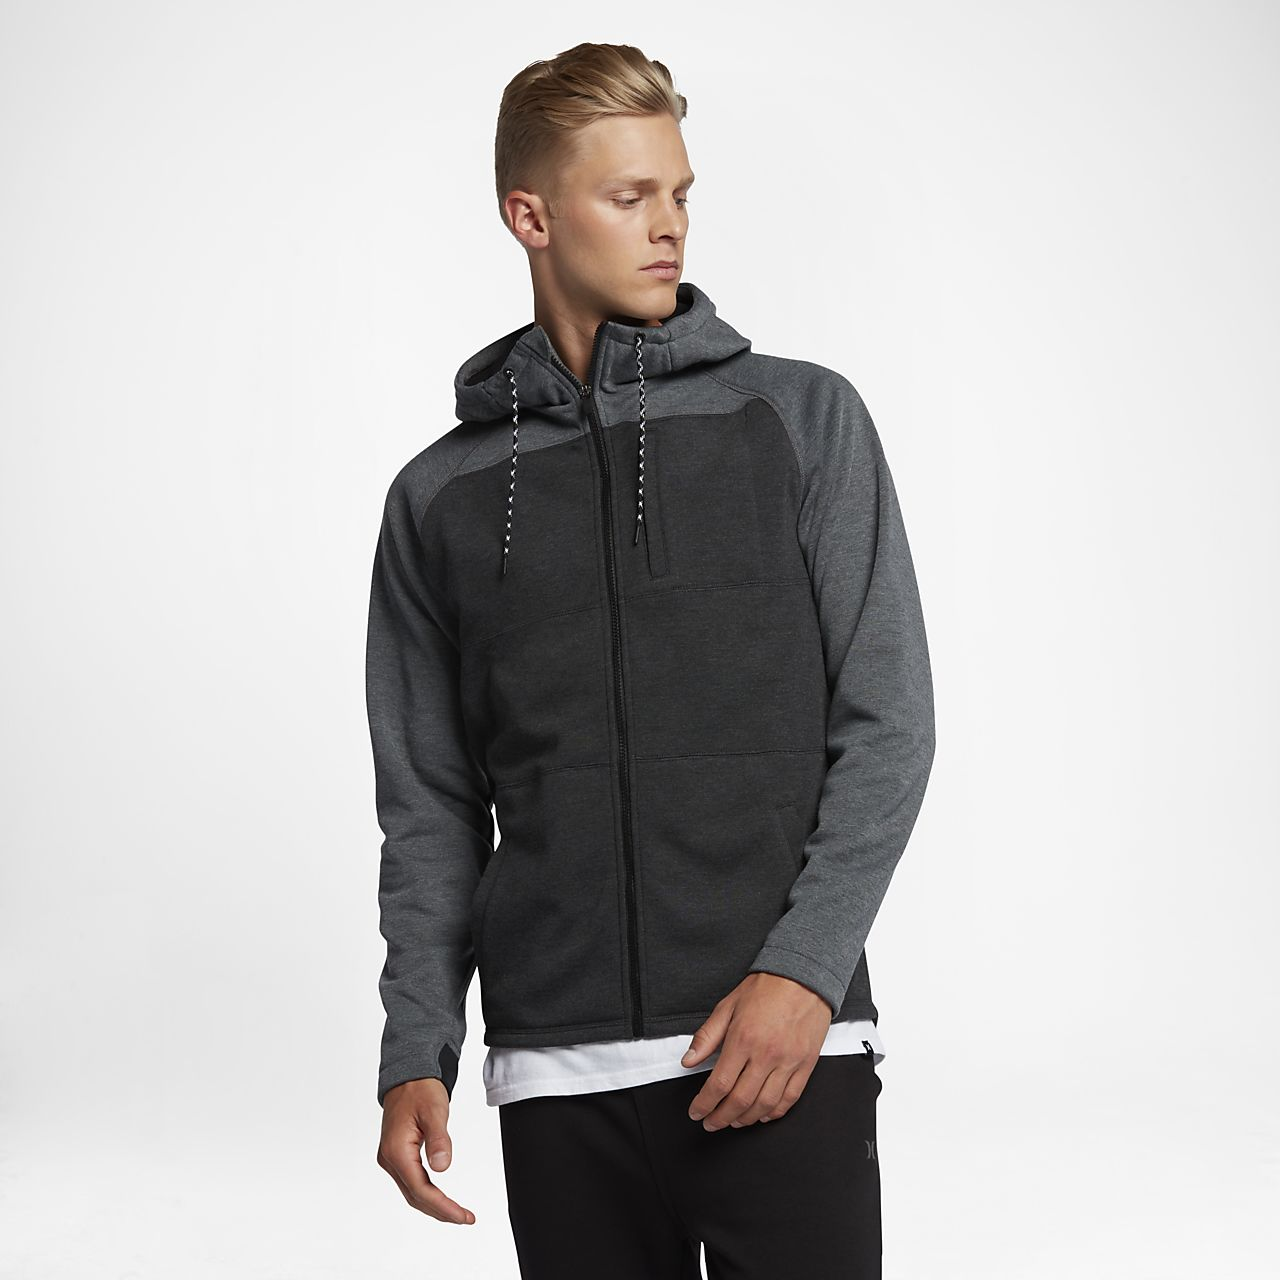 Sweat à capuche Hurley Therma Protect Plus Zip pour Homme